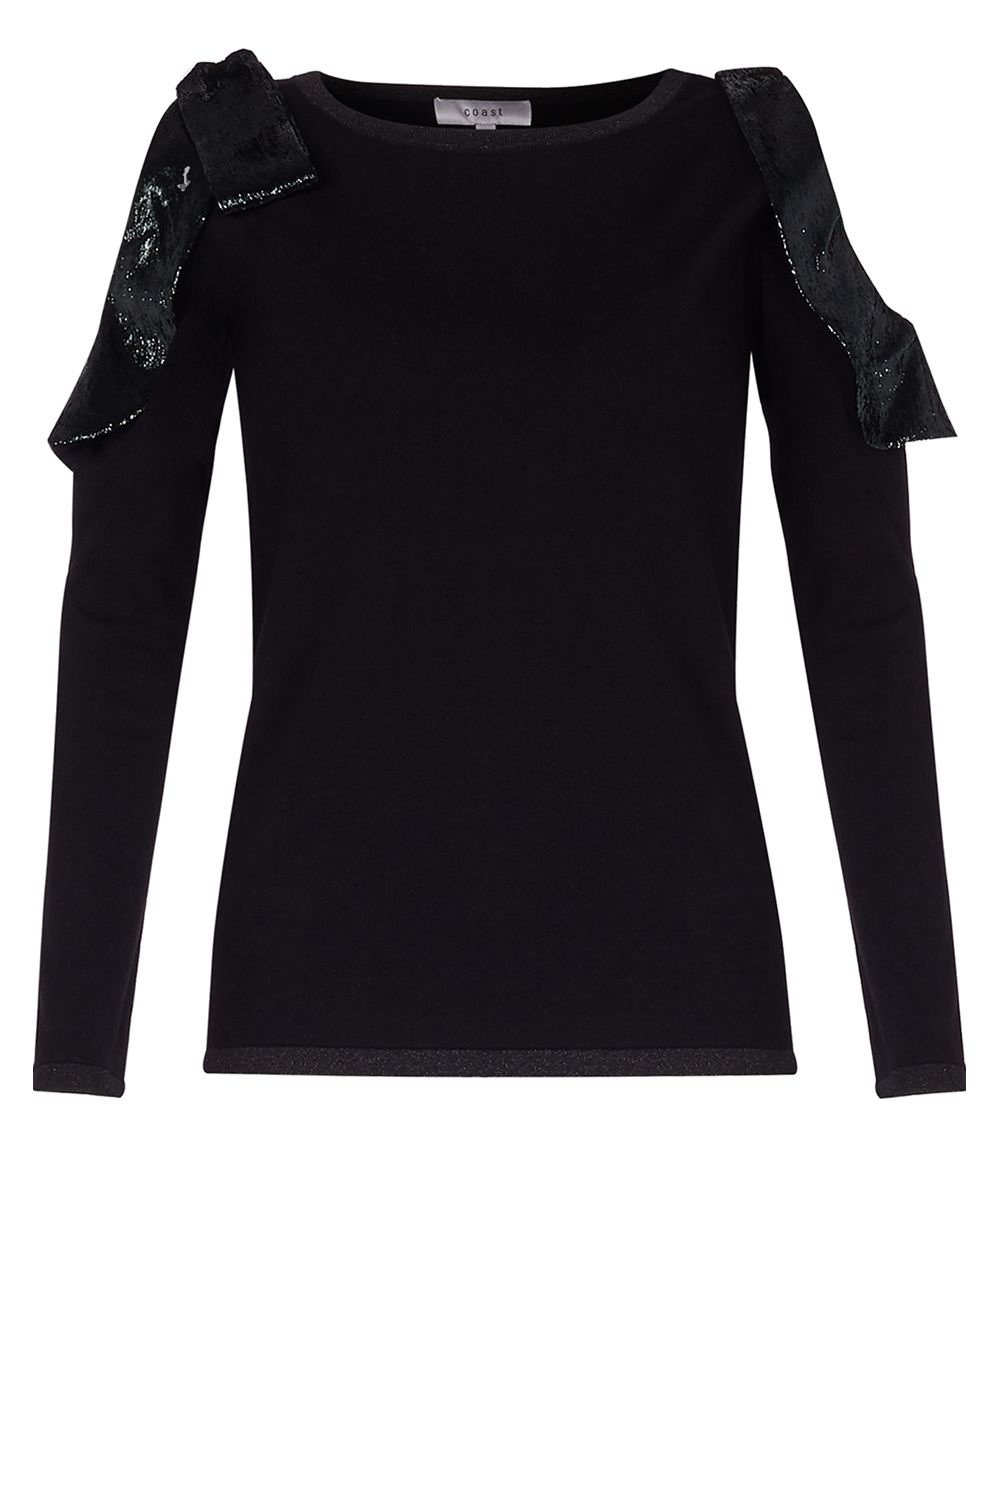 Coast Behati Velvet Bow Knit Top, Black